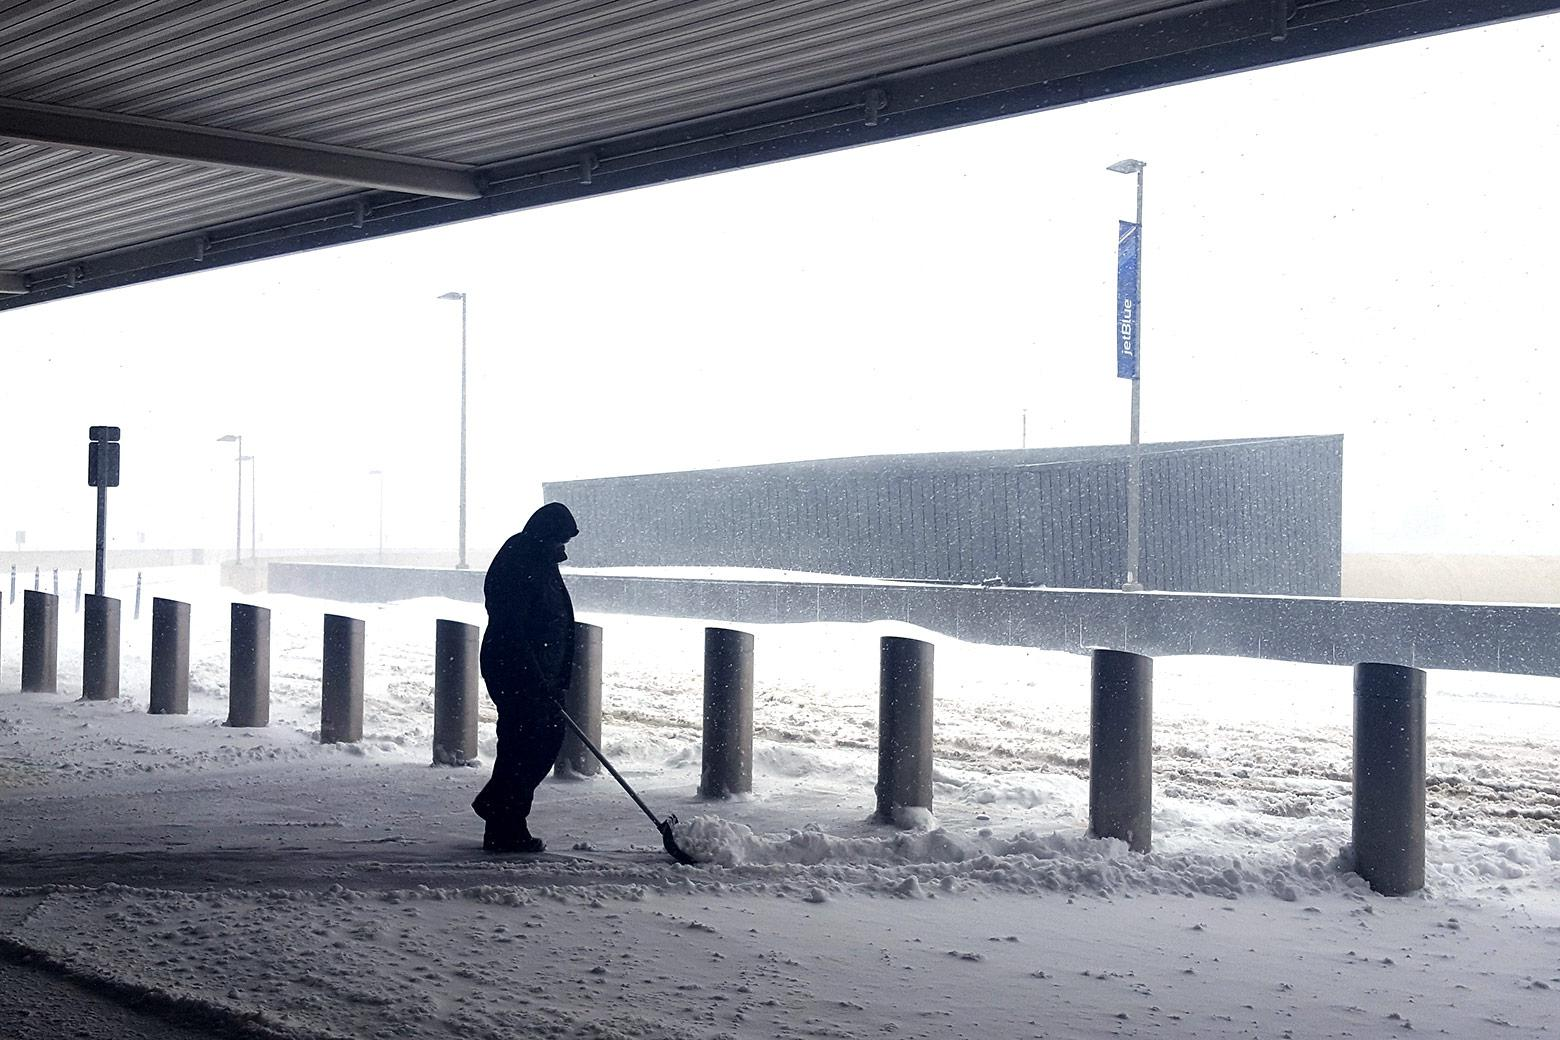 An airport employee shovels snow at the curb of the departures drop-off area.